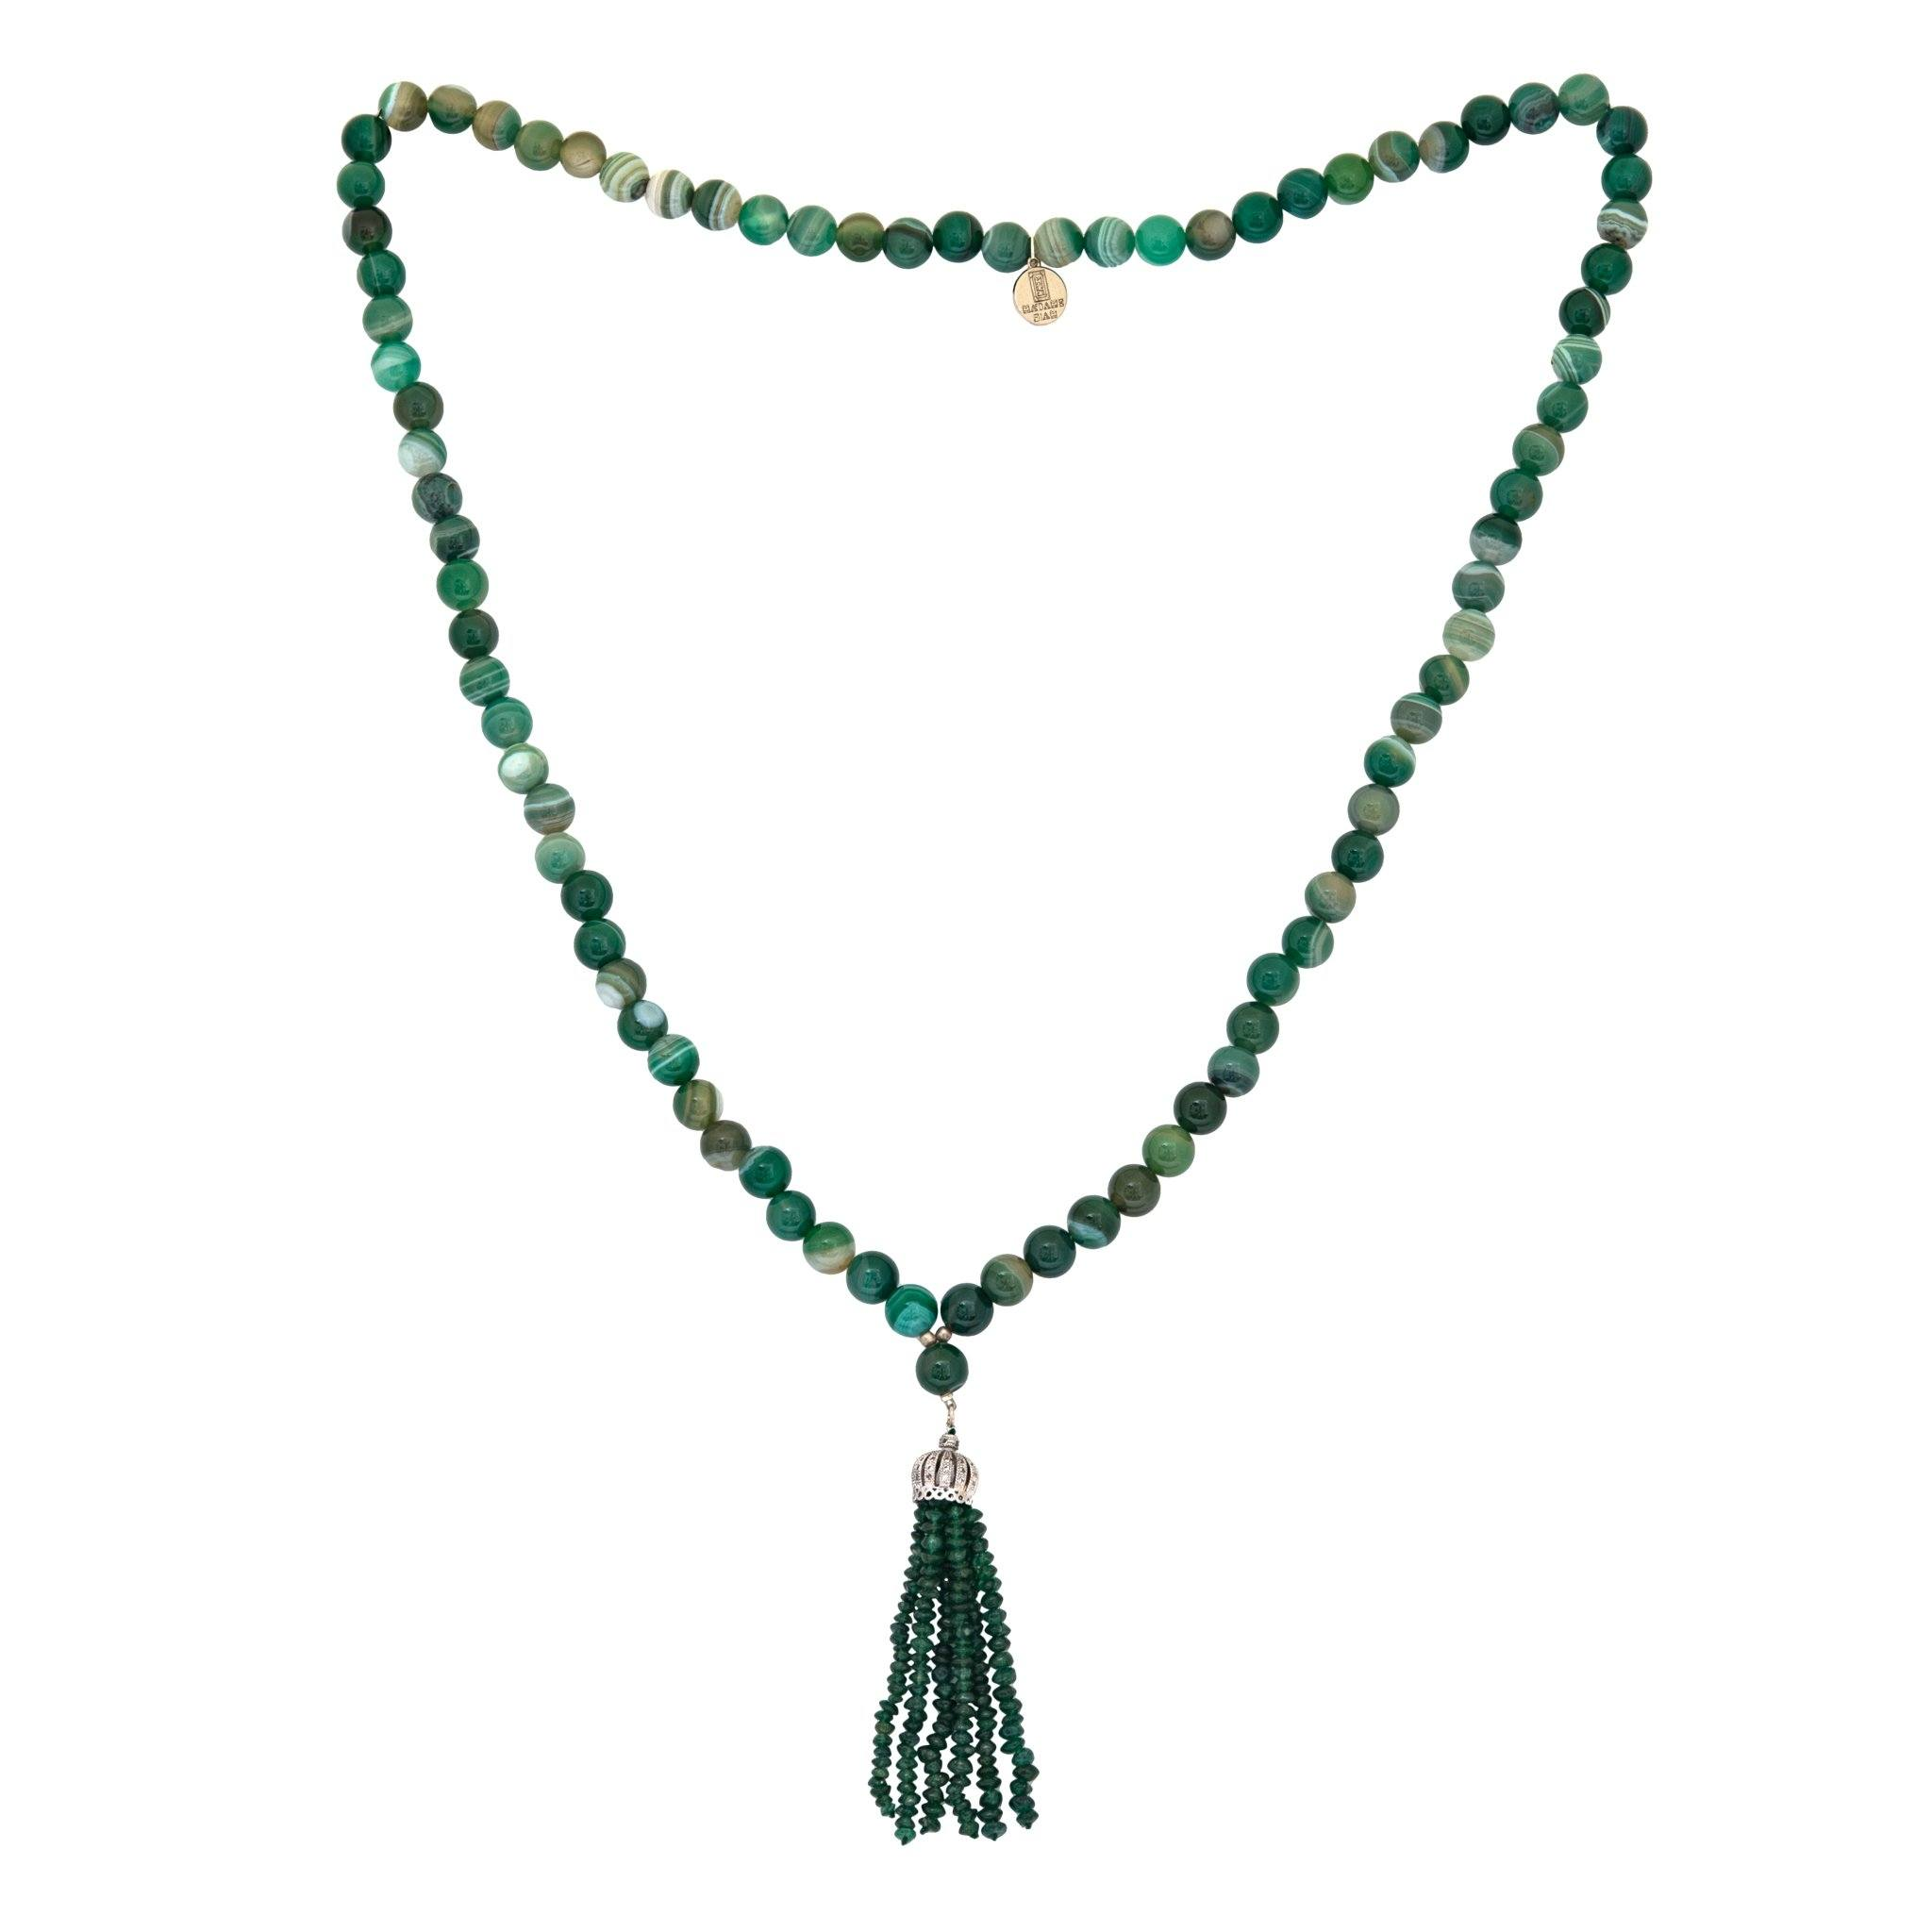 STONA green agate turkish style necklace - MadamSiam